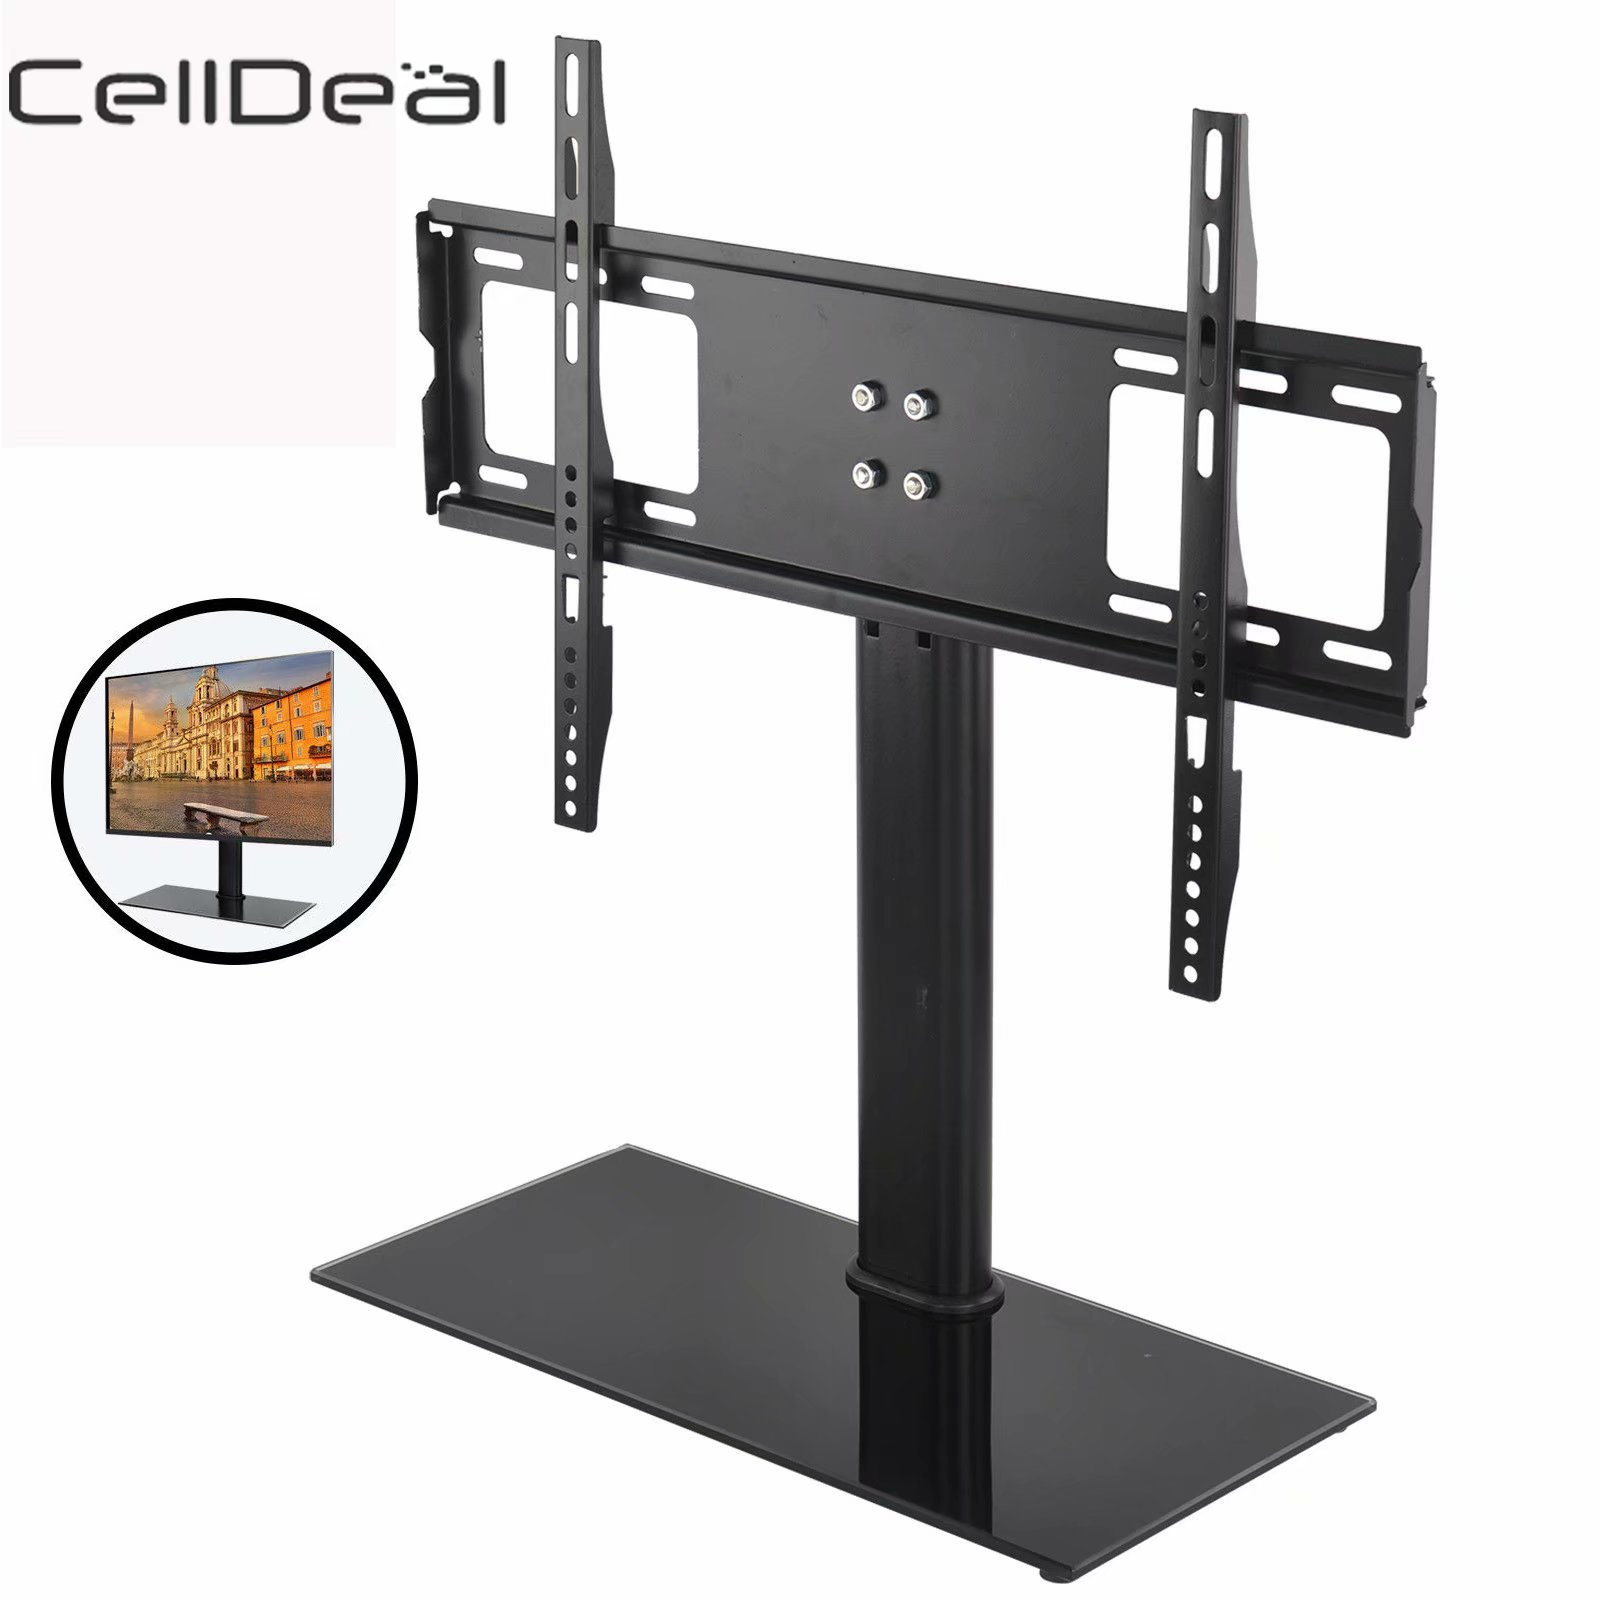 CellDeal Universal Adjustable Tabletop TV Stand Table Bracket Pedestal LCD LED 37